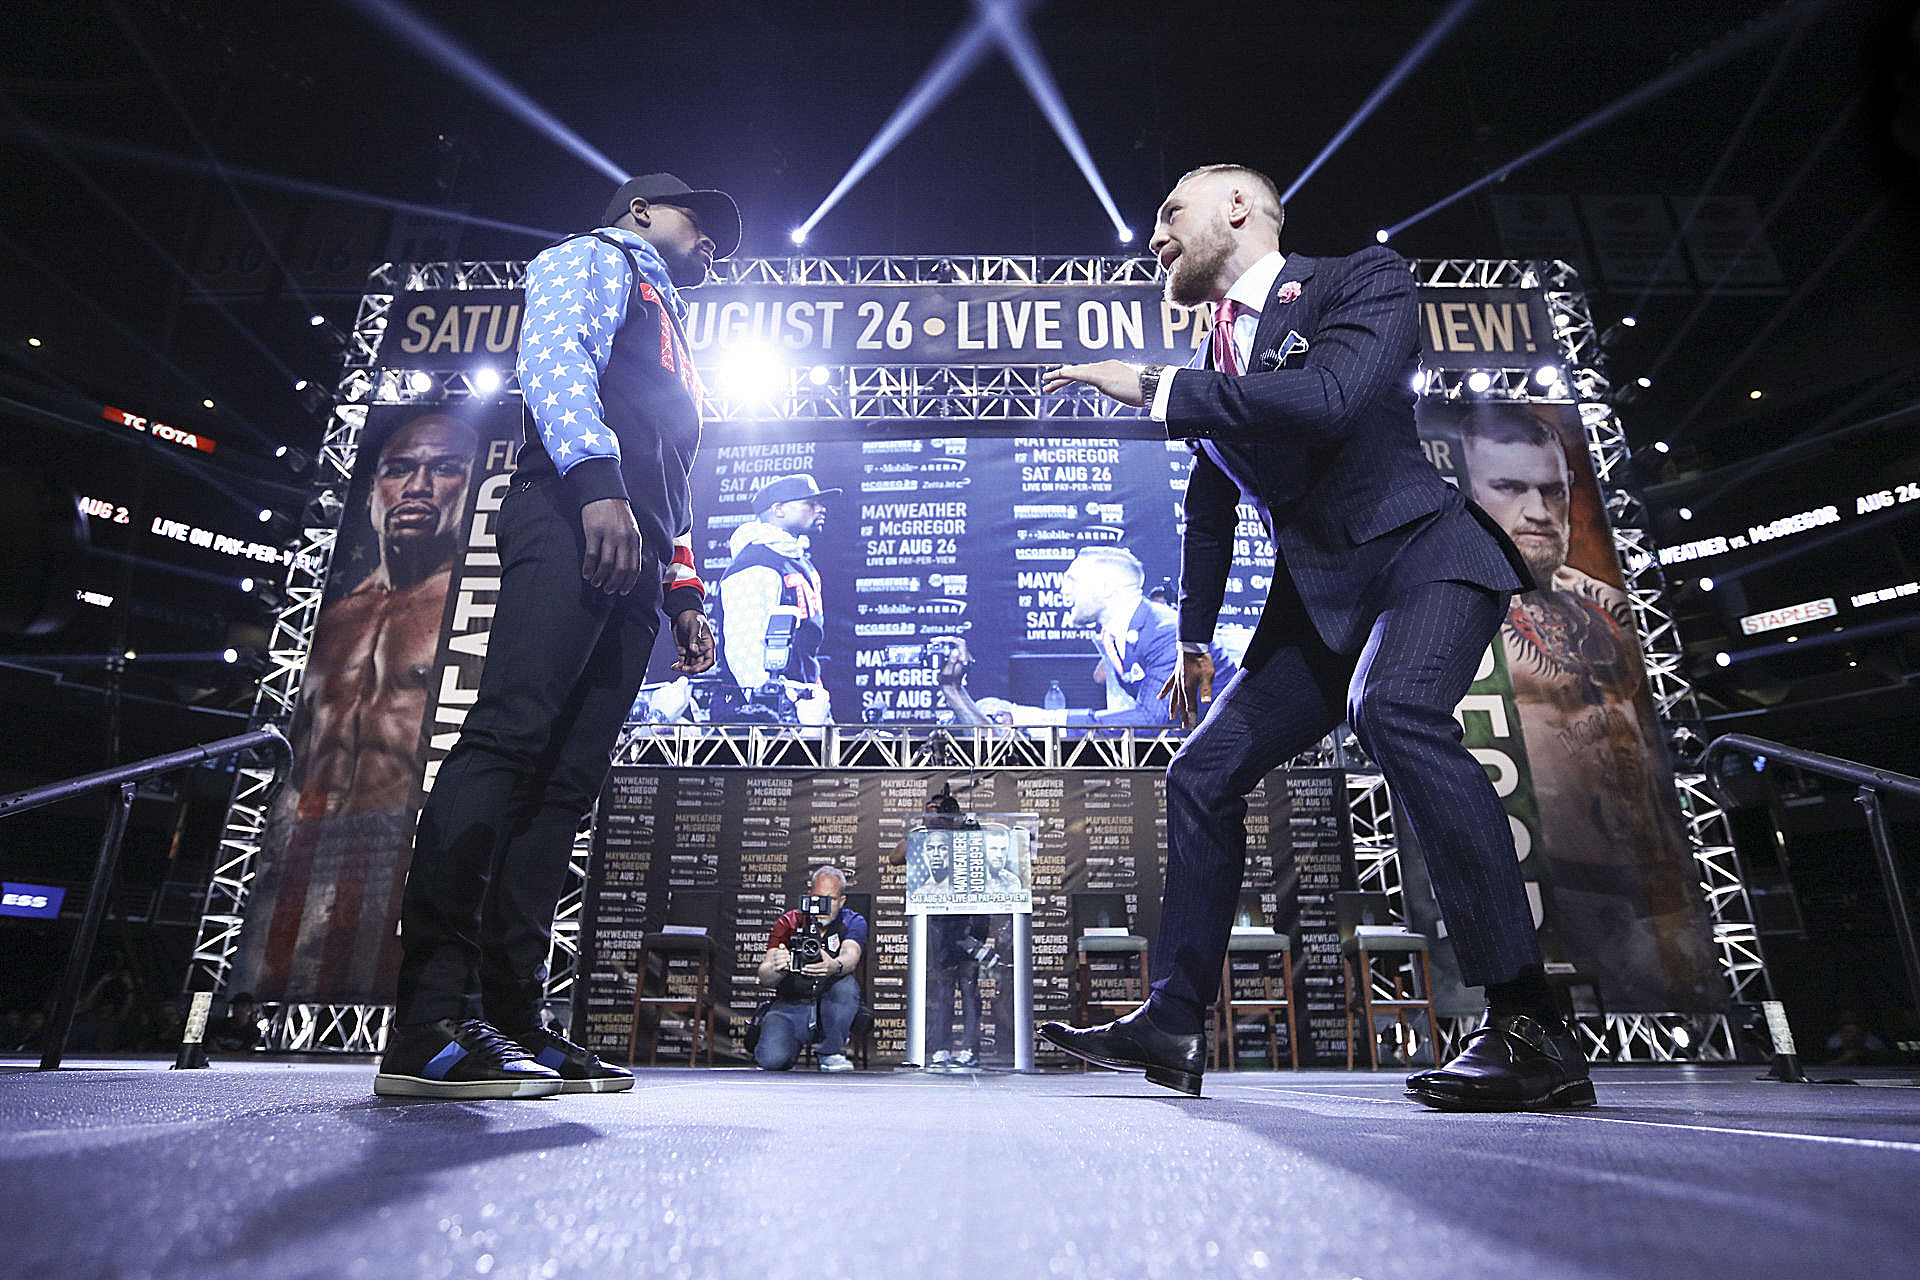 Floyd Mayweather Vs. Conor McGregor Ticket Prices, On-Sale Date Set